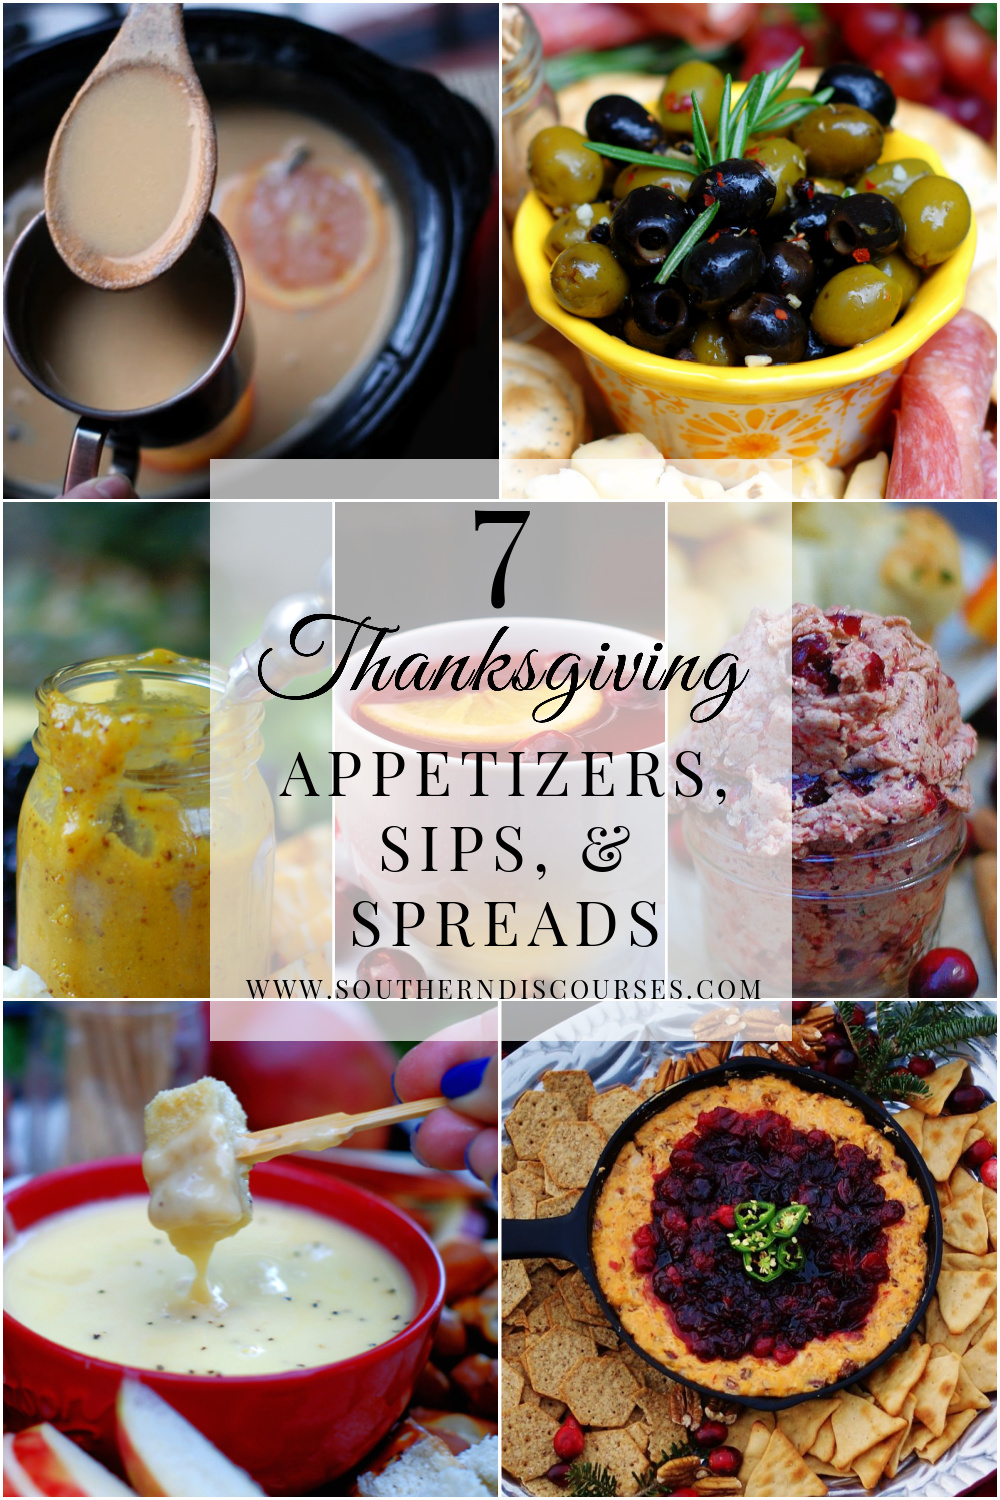 From cozy drinks, to dips, butters, snacks & spreads, this easy collection will help you put the finishing touches on your Thanksgiving holiday.